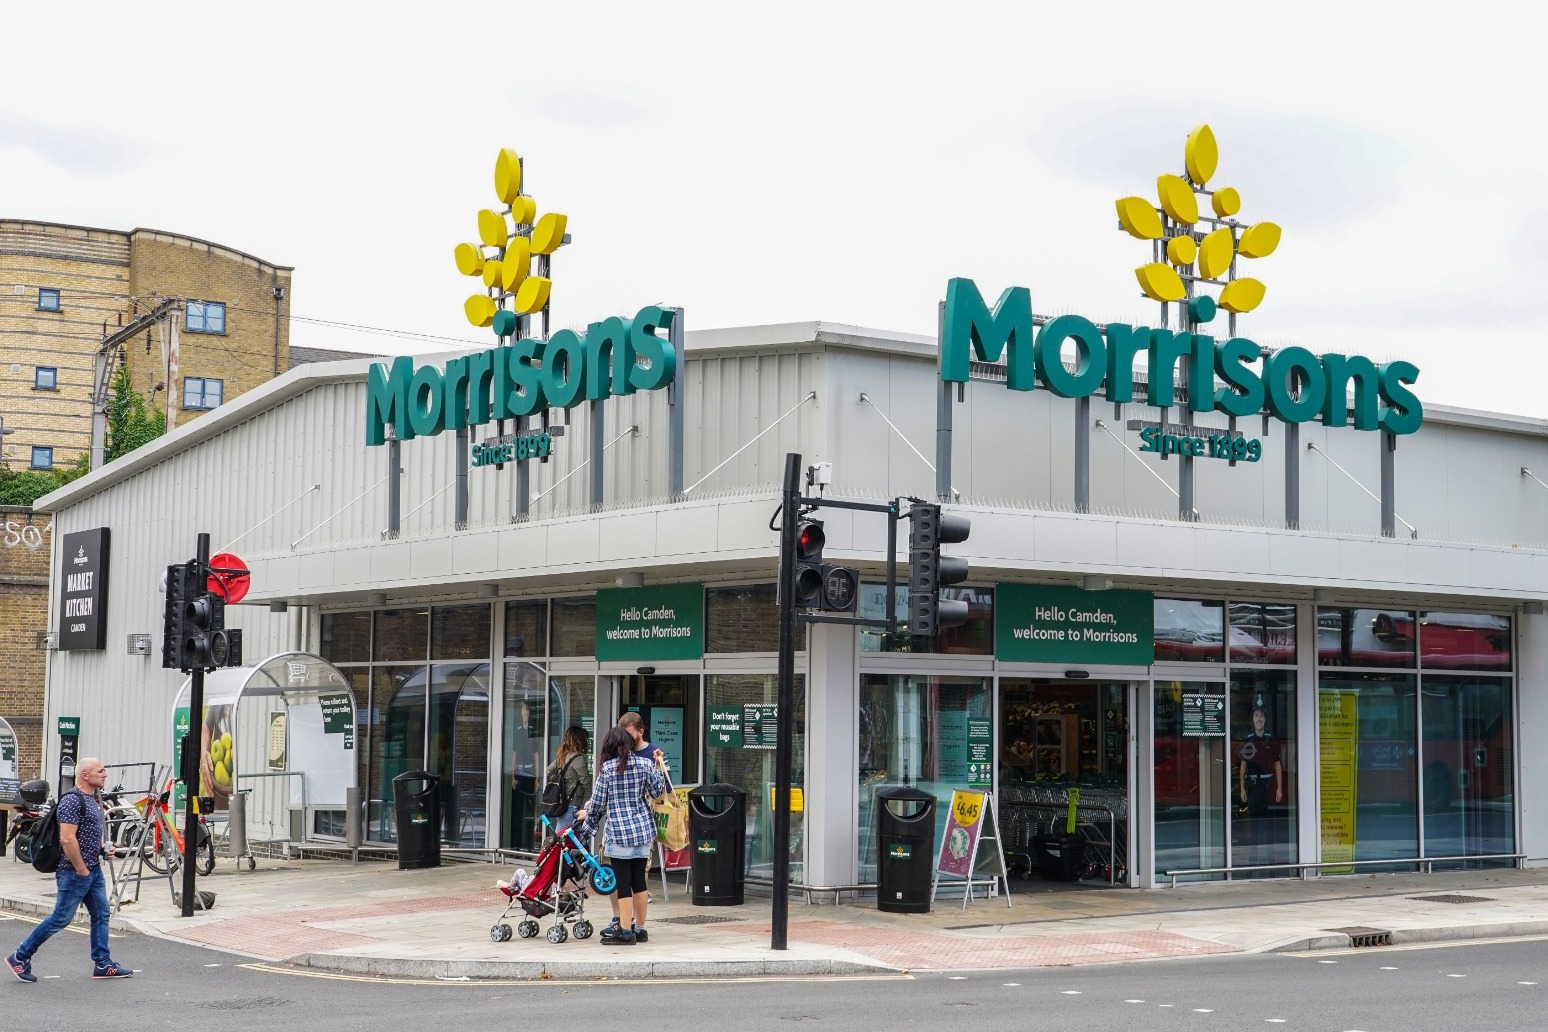 Morrisons takeover auction battle ends with £7bn bid from private equity giant